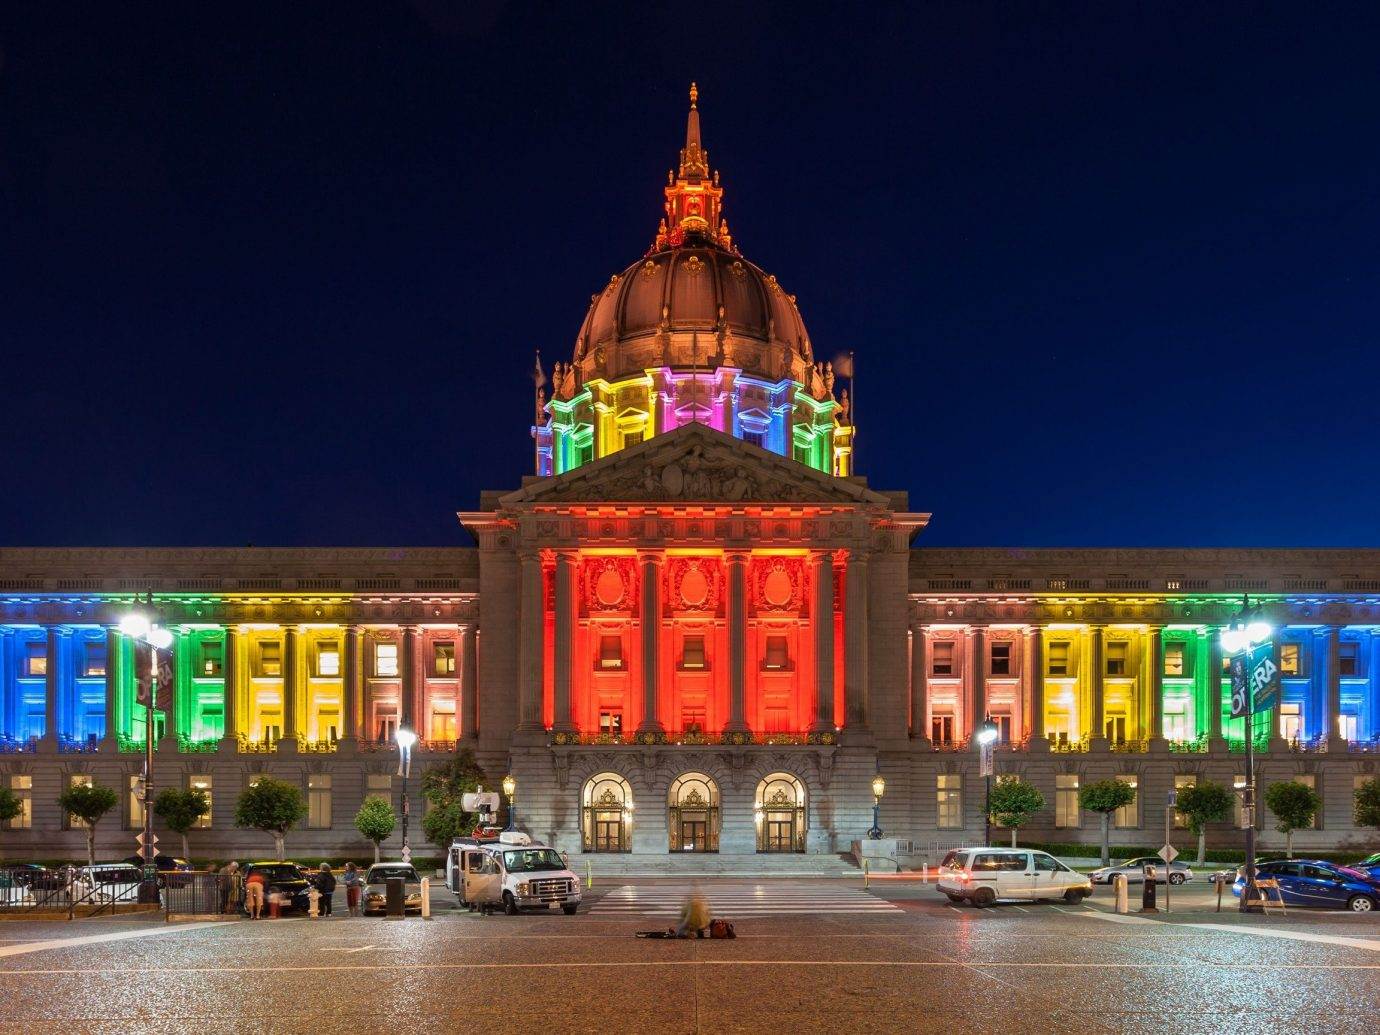 Trip Ideas building landmark outdoor night plaza City evening cityscape place of worship colorful colored